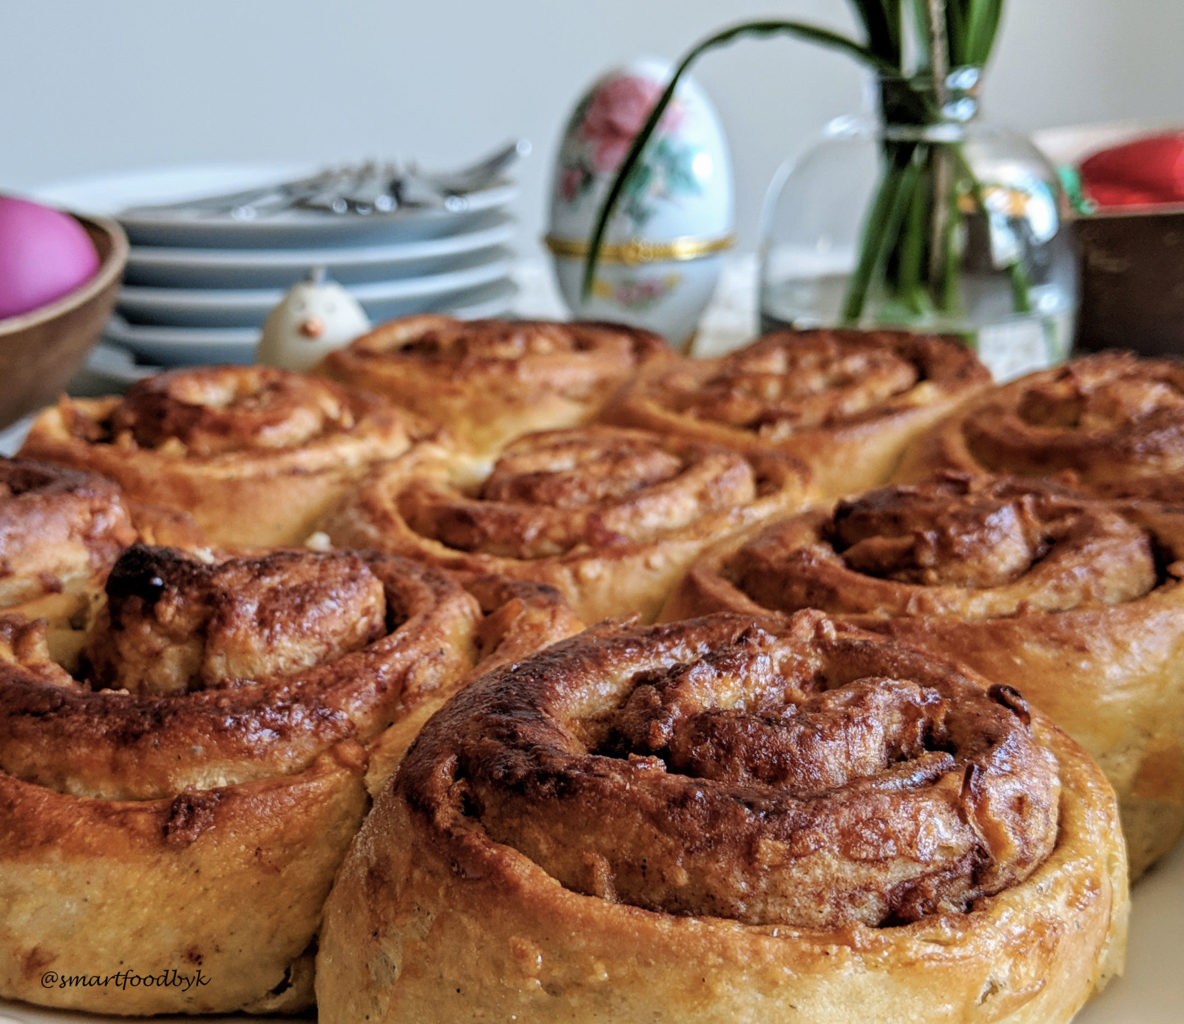 Kanelbullar – traditional Swedish cinnamon rolls